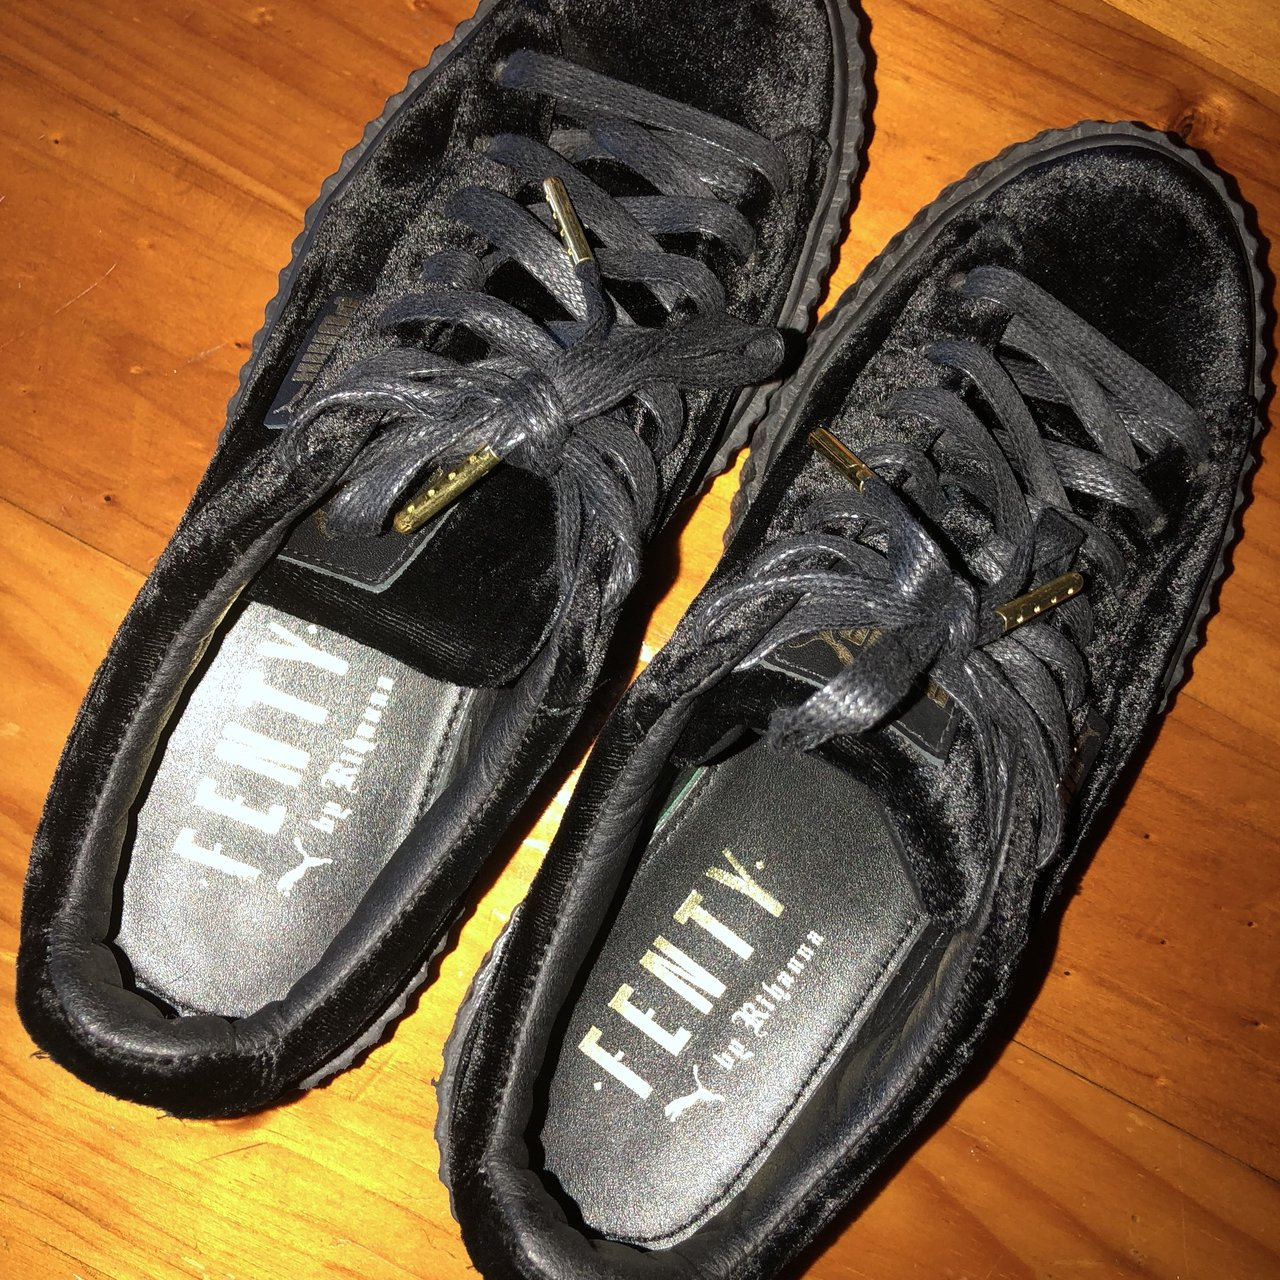 8f32bc3e306 Fenty Puma platforms Black suede US Women s size 7.5   UK 5 - Depop